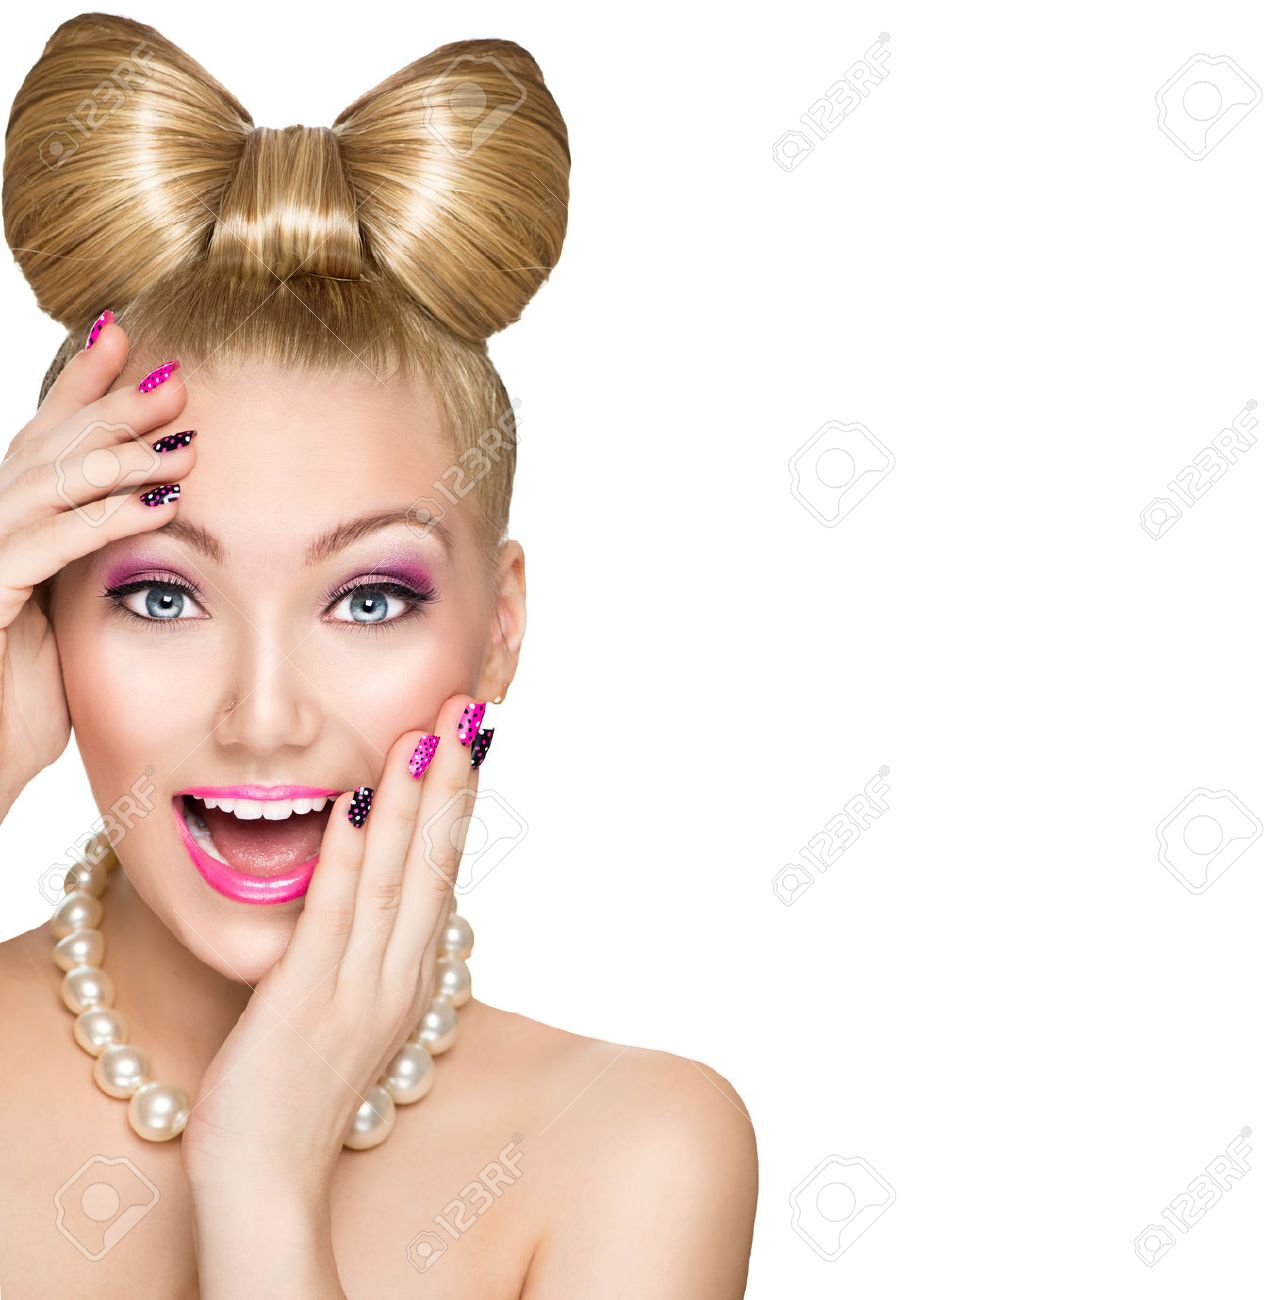 Hairstyles Stock Photos. Royalty Free Hairstyles Images